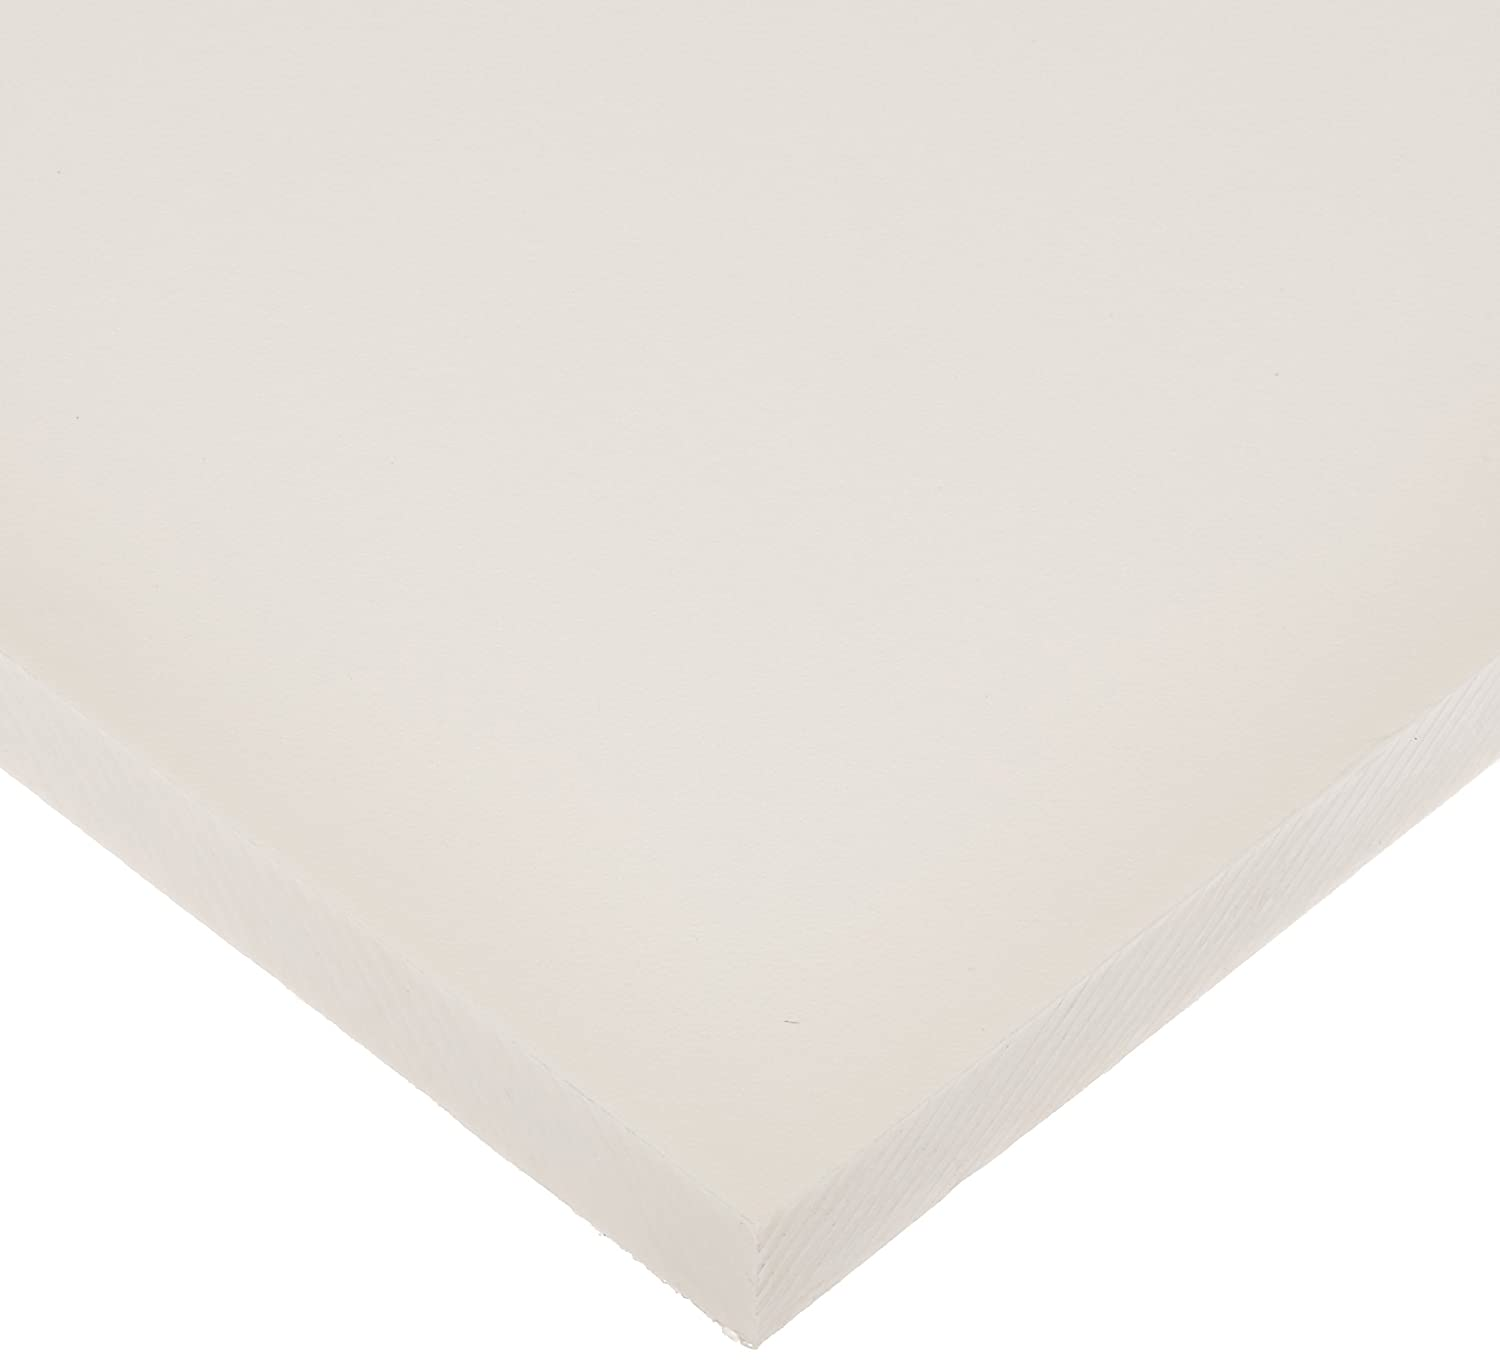 "Good for Marine Use 1//2/"" White Starboard 12/"" x 27/""  Marineboard plastic"